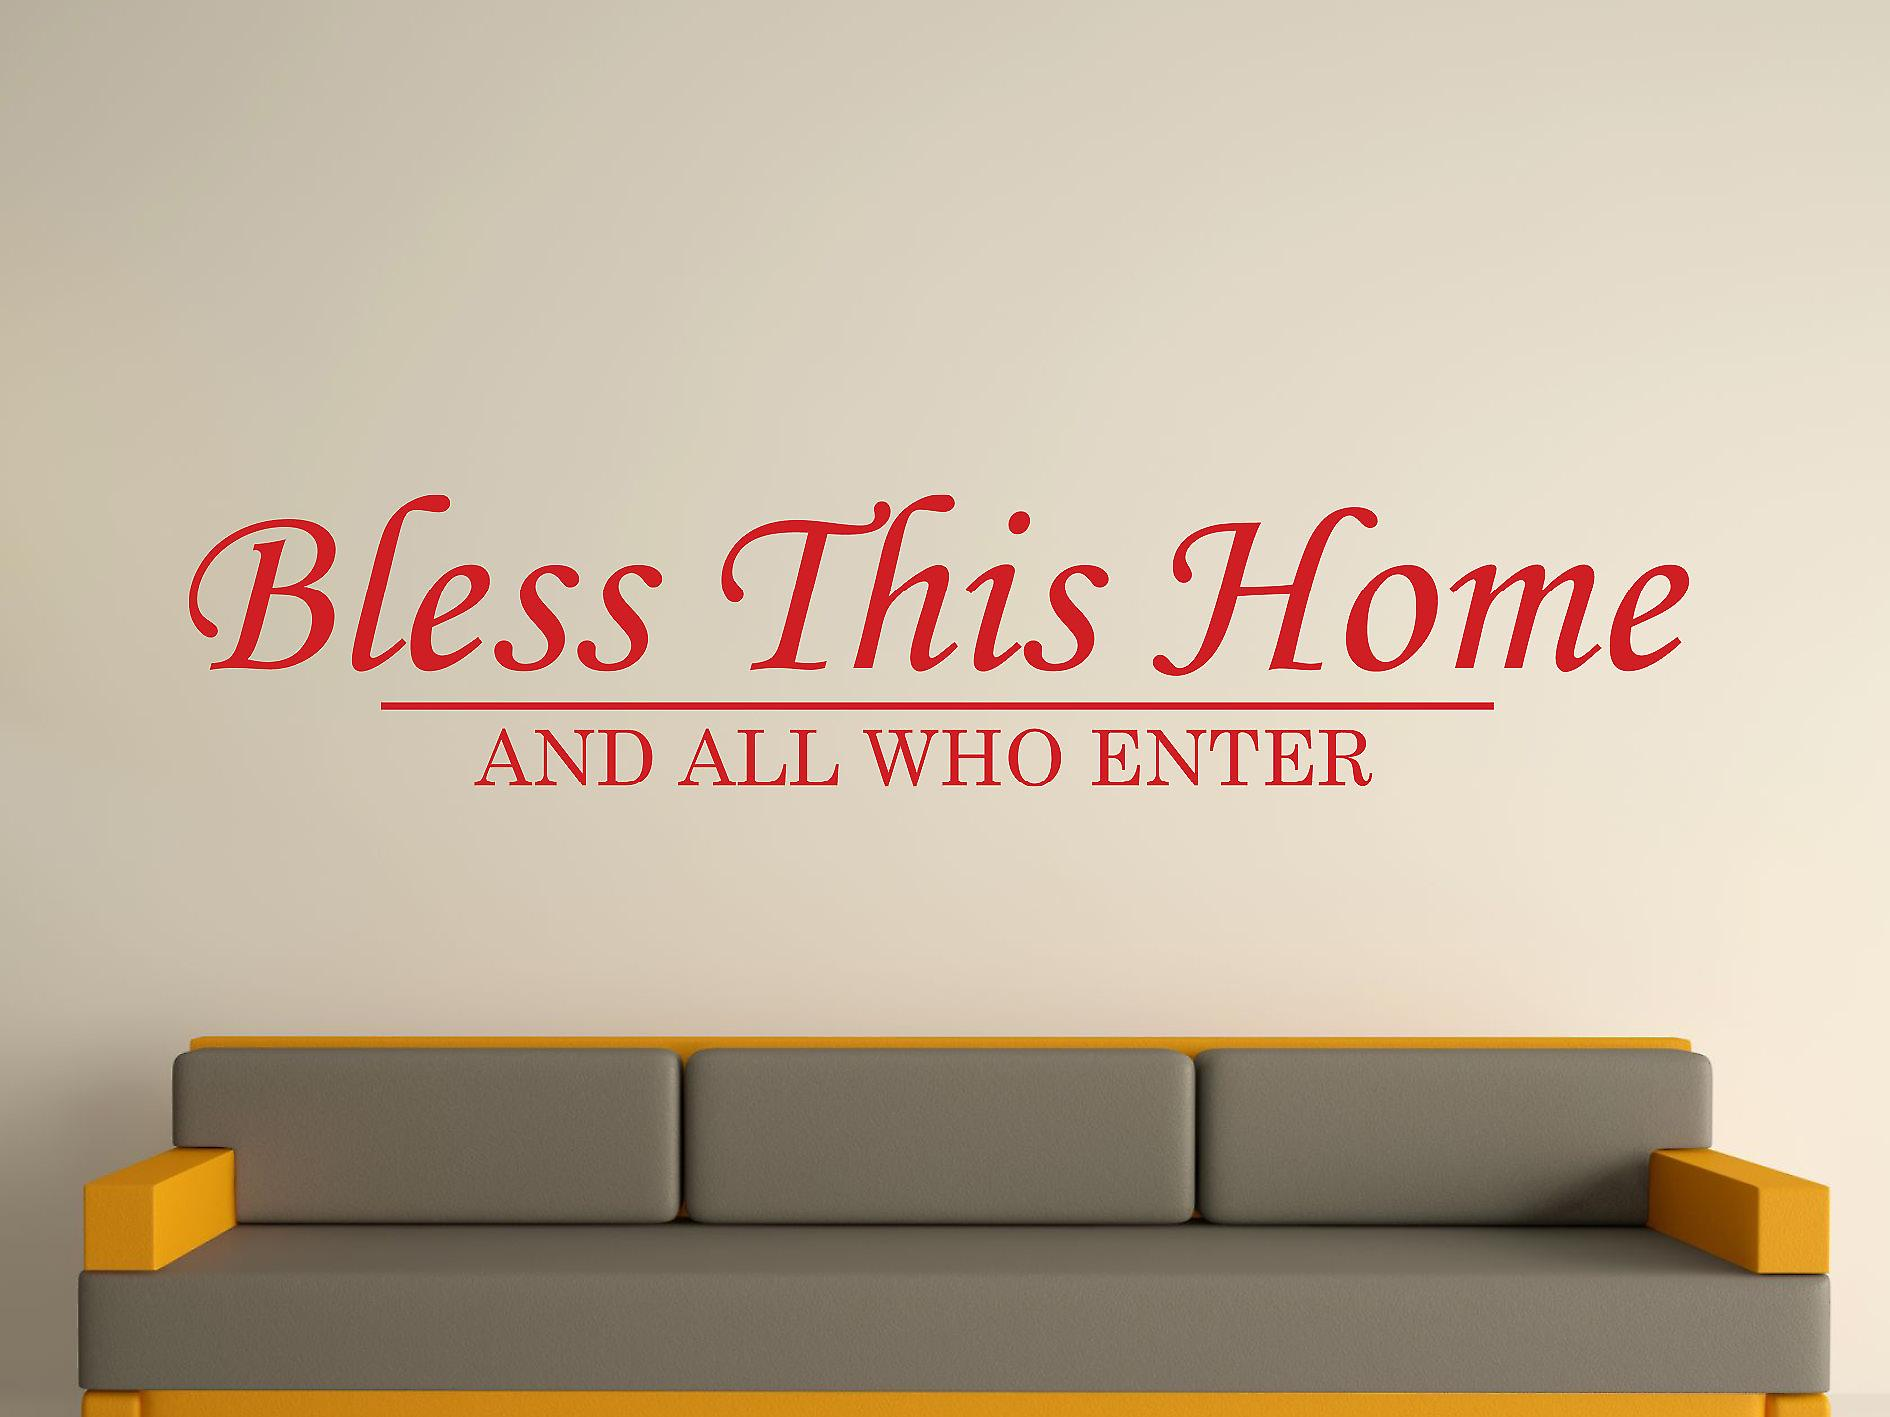 Bless This Home Wall Art Sticker - Deep Red